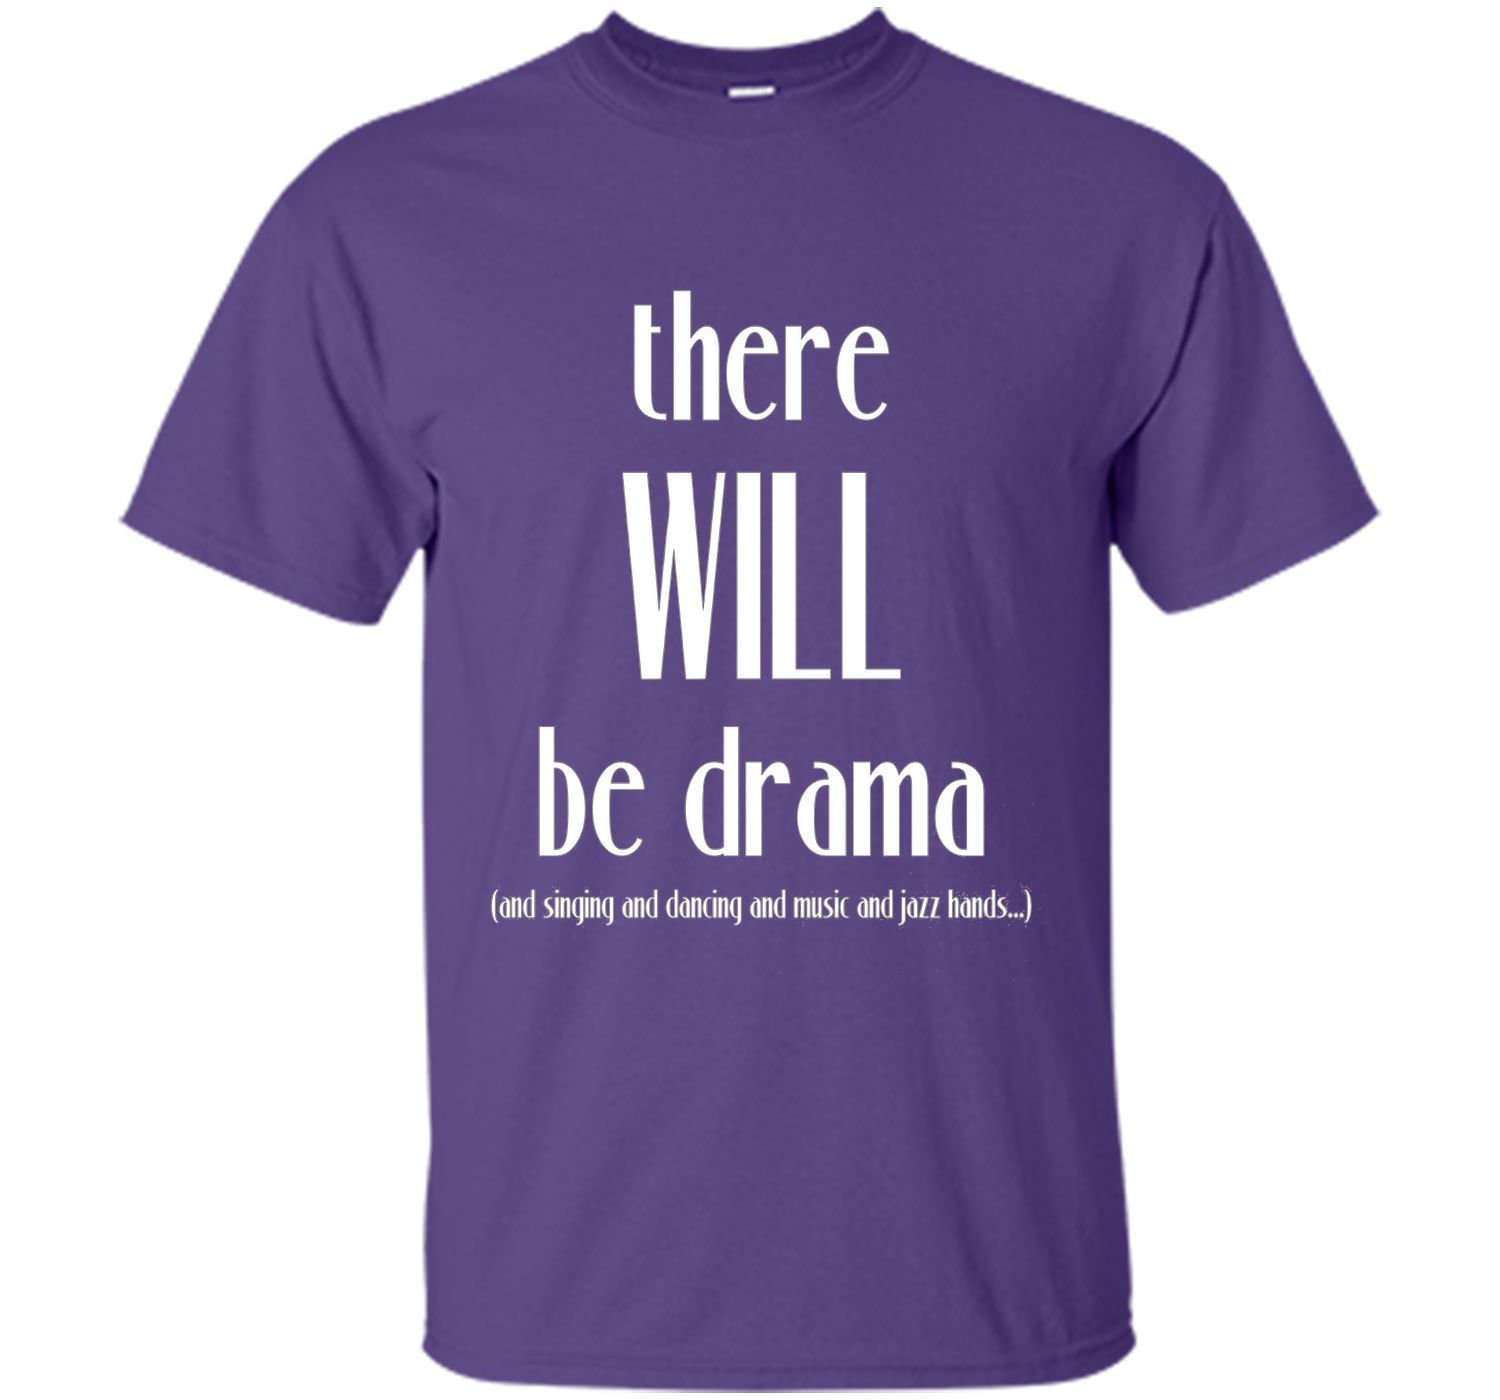 There Will Be Drama, Singing, Dancing- Funny Theater Shirt t-shirt